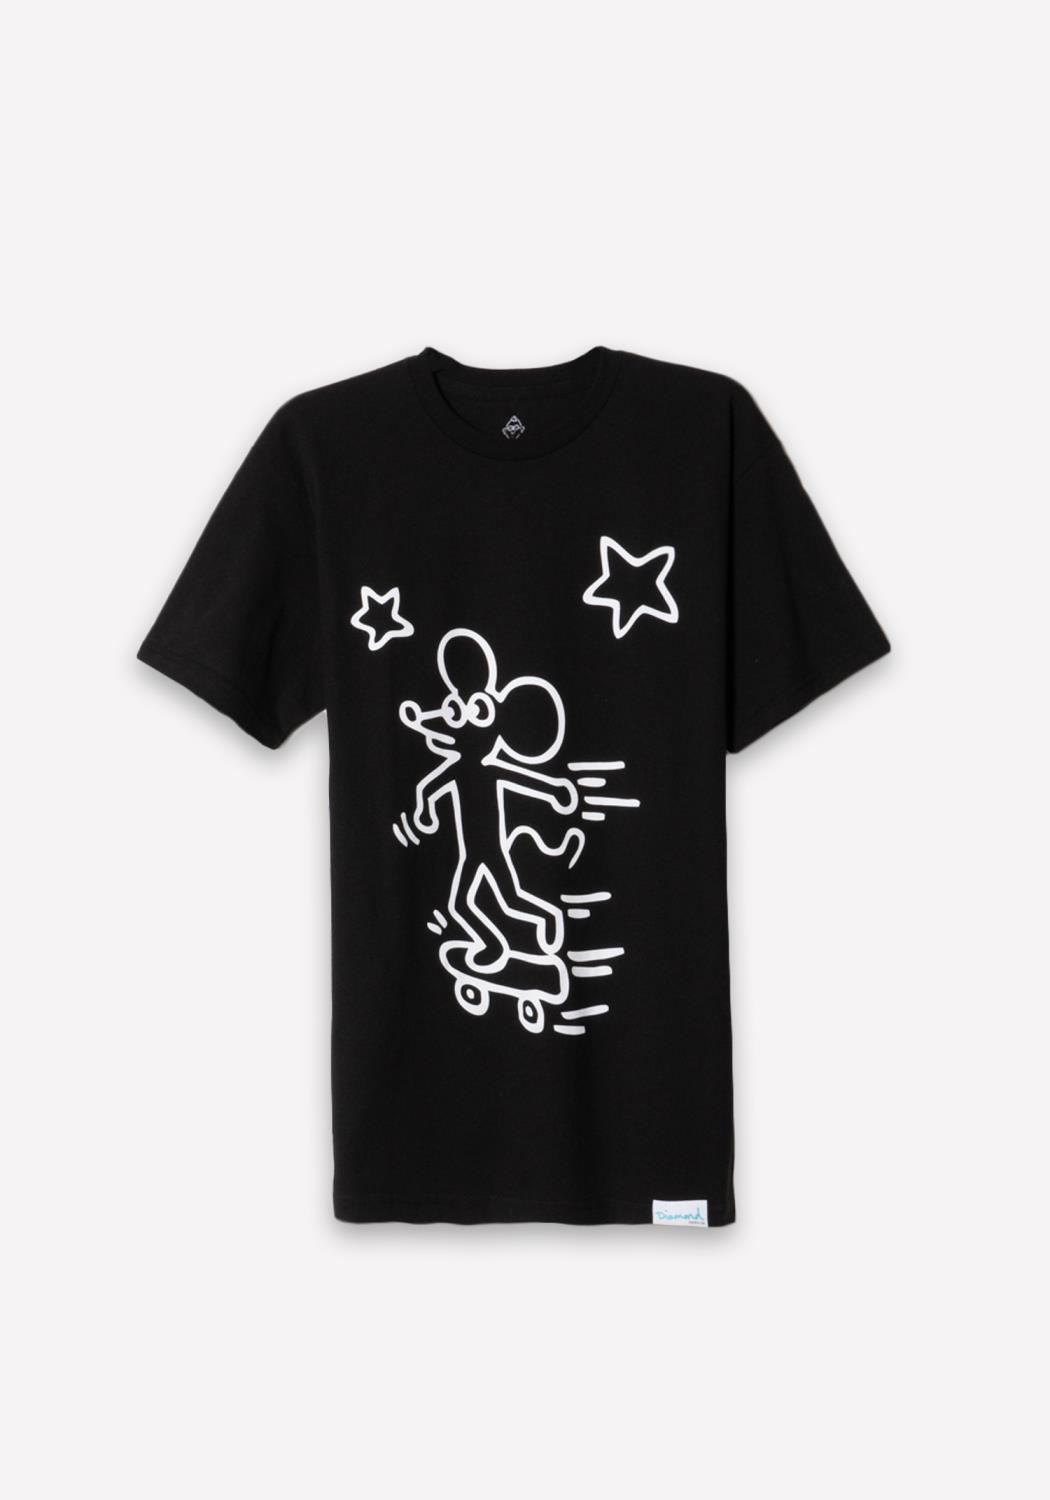 Diamond x Haring Skating Tee in Black